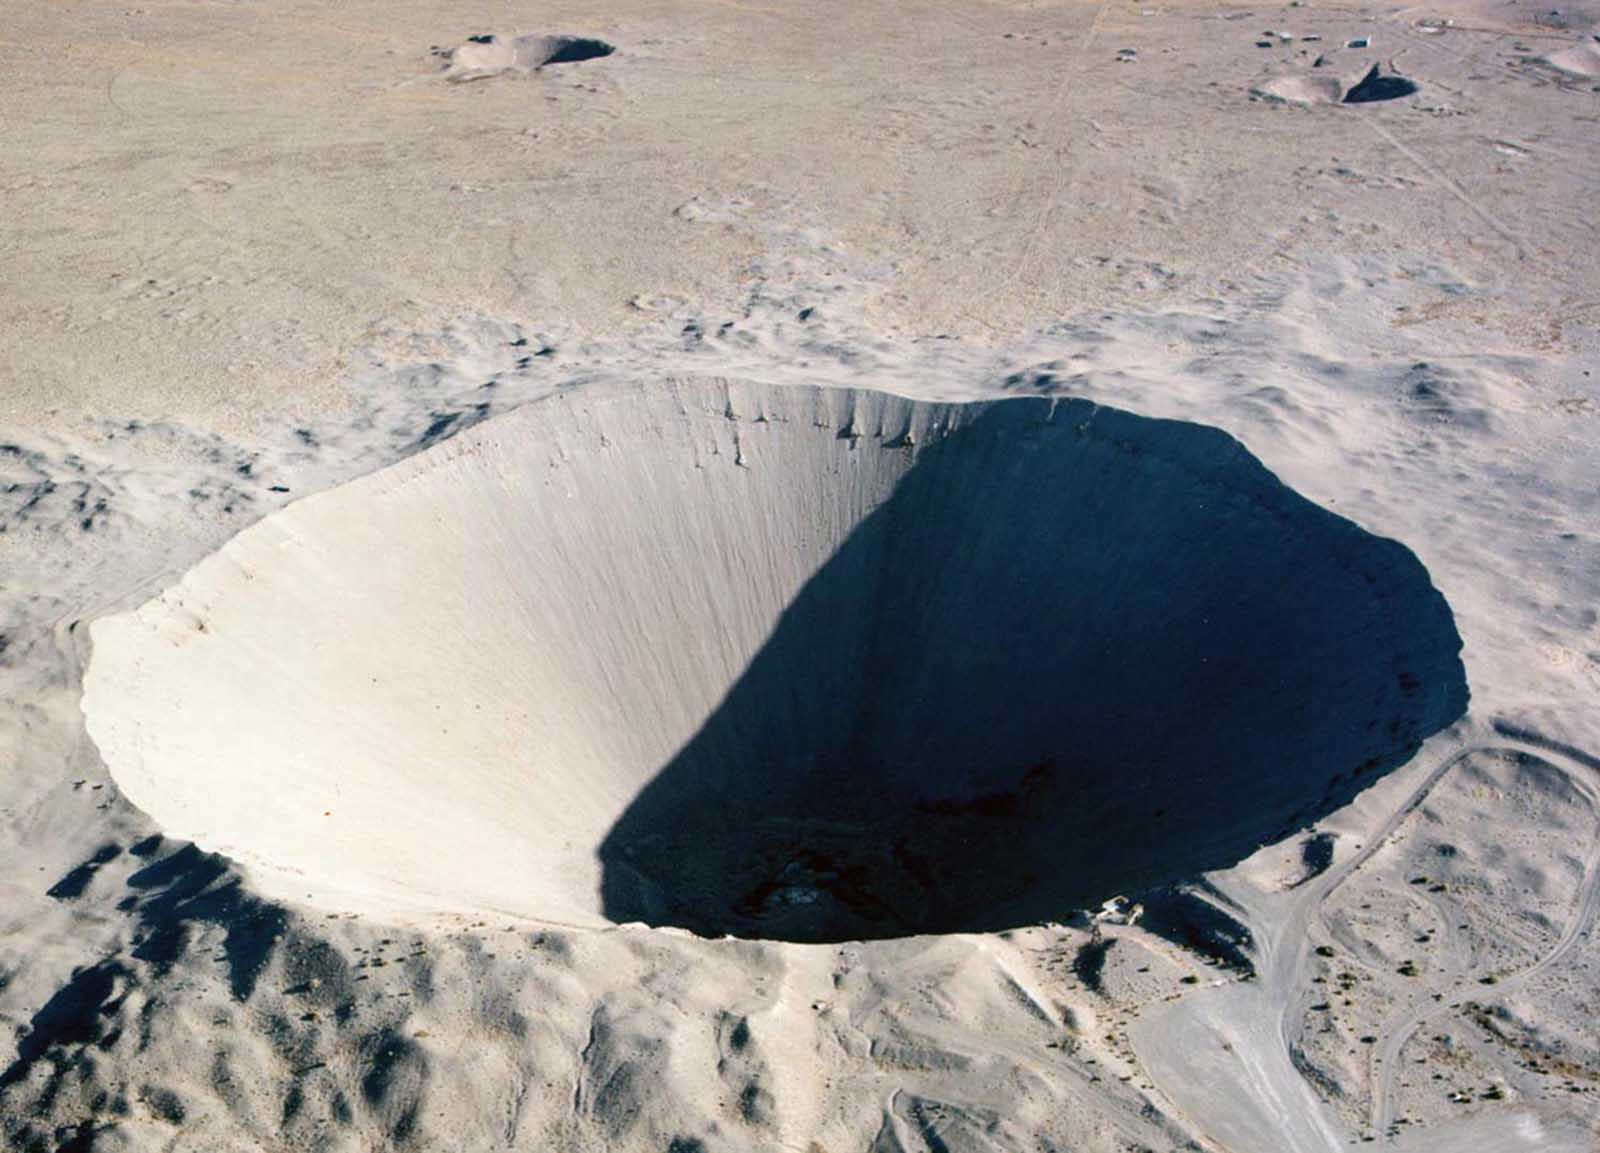 Sedan Crater was formed when a 100-kiloton explosive buried under 635 feet of desert alluvium was fired at the Nevada Test Site on July 6, 1962, displacing 12 million tons of earth. The crater is 320 feet deep and 1,280 feet in diameter.